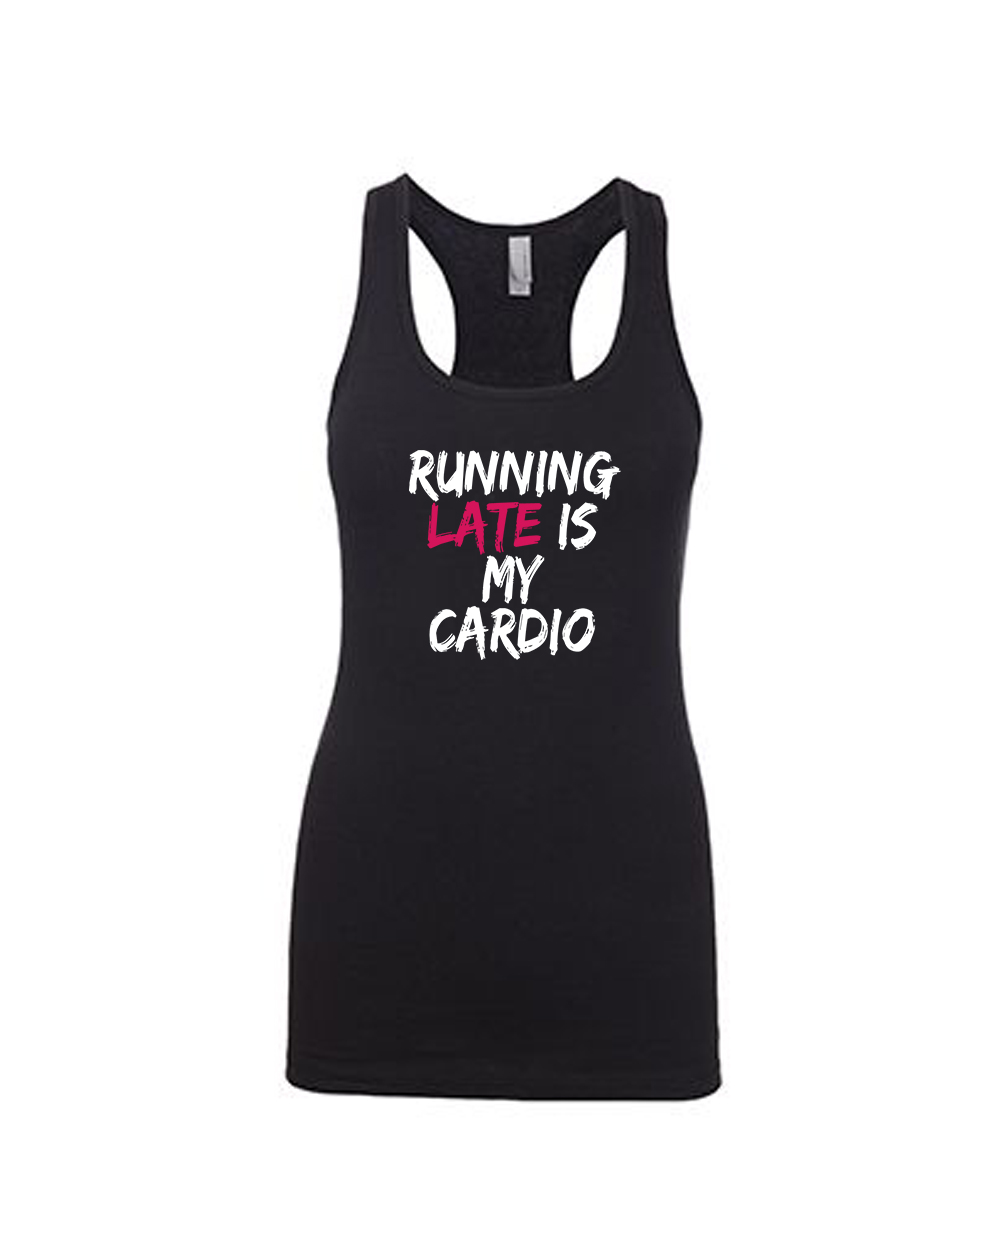 Running Late is My Cardio Sleeveless Tanks Top T-Shirts Fit Mens